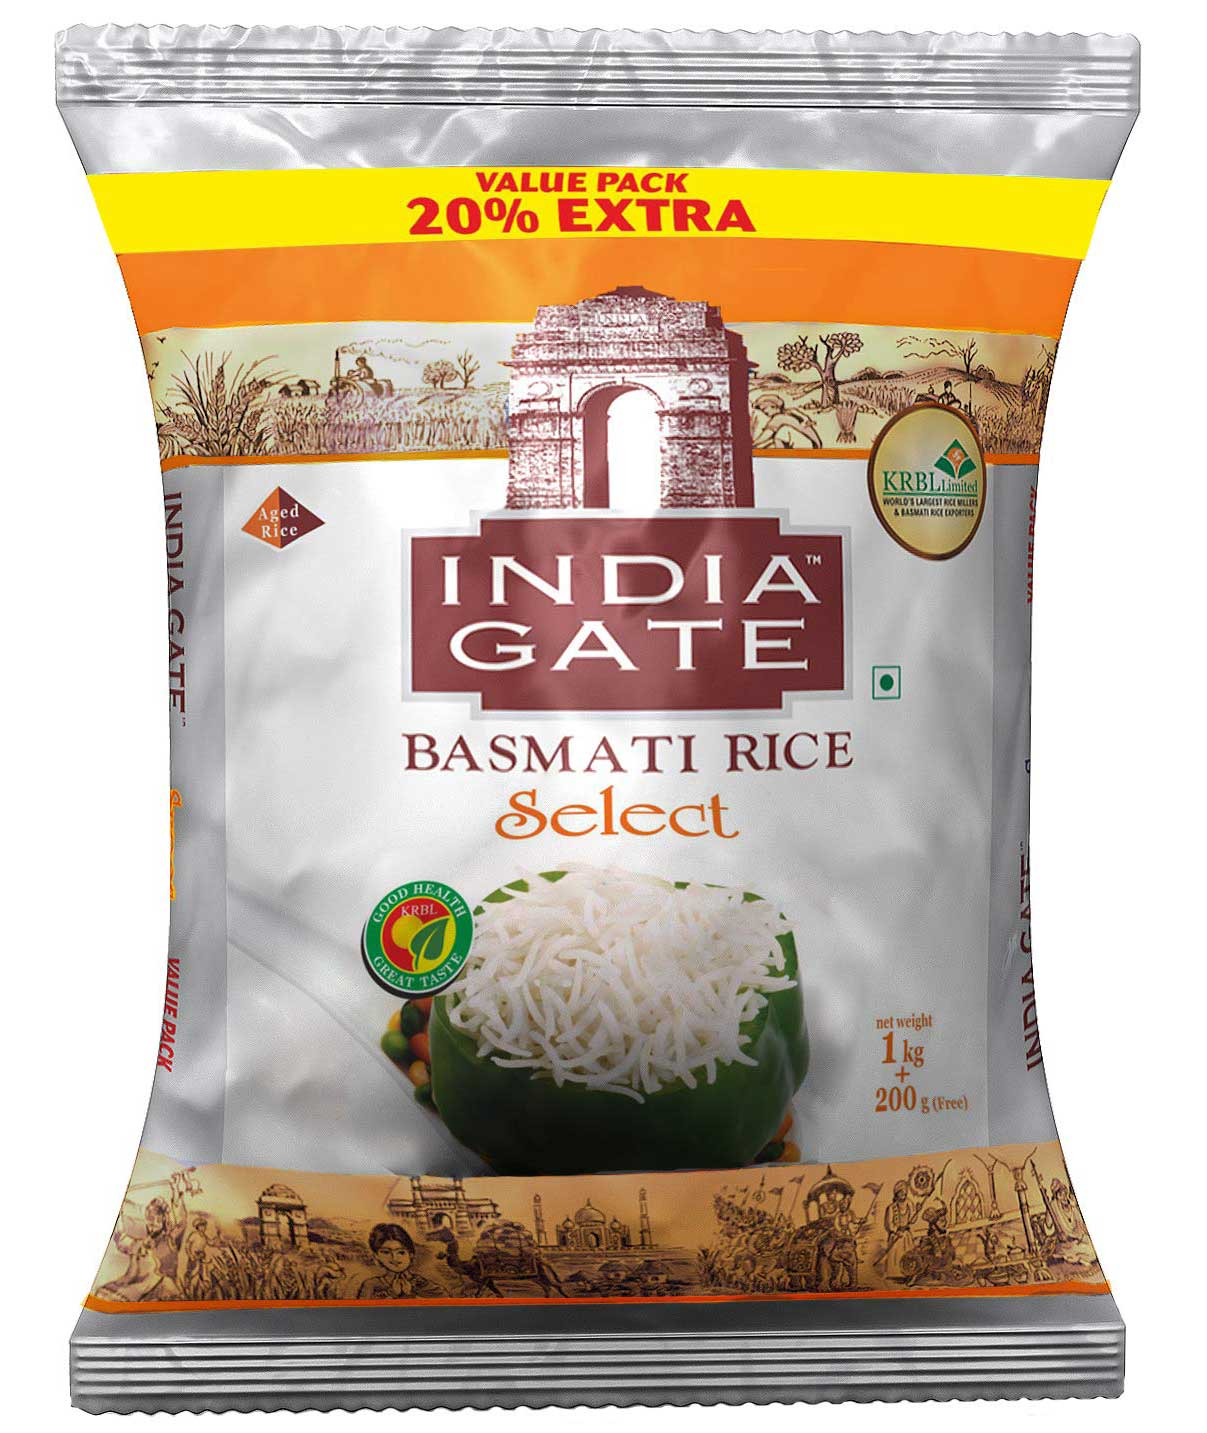 India Gate Select, 1kg with Free 200g